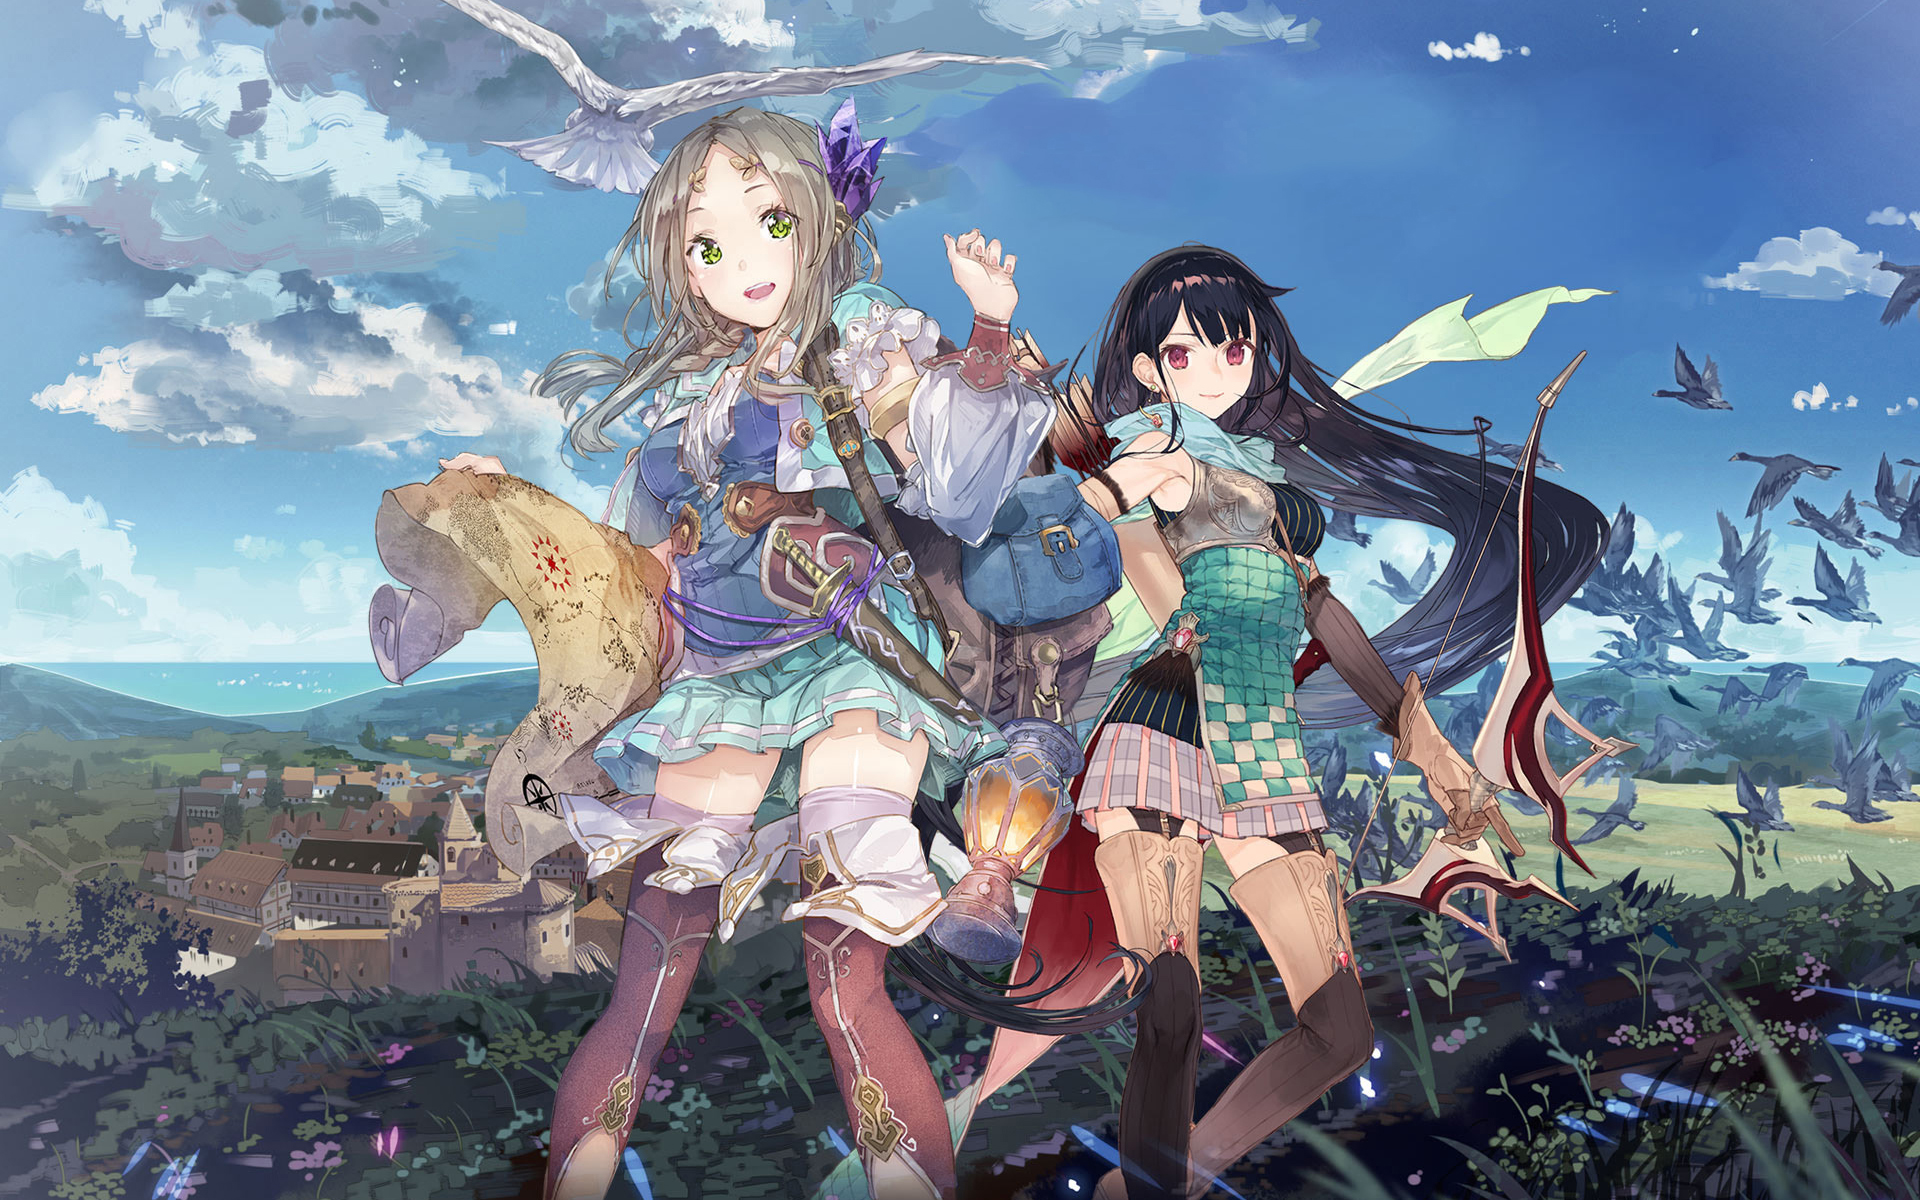 Atelier Firis The Alchemist and the Myterious Journey Wallpaper 004